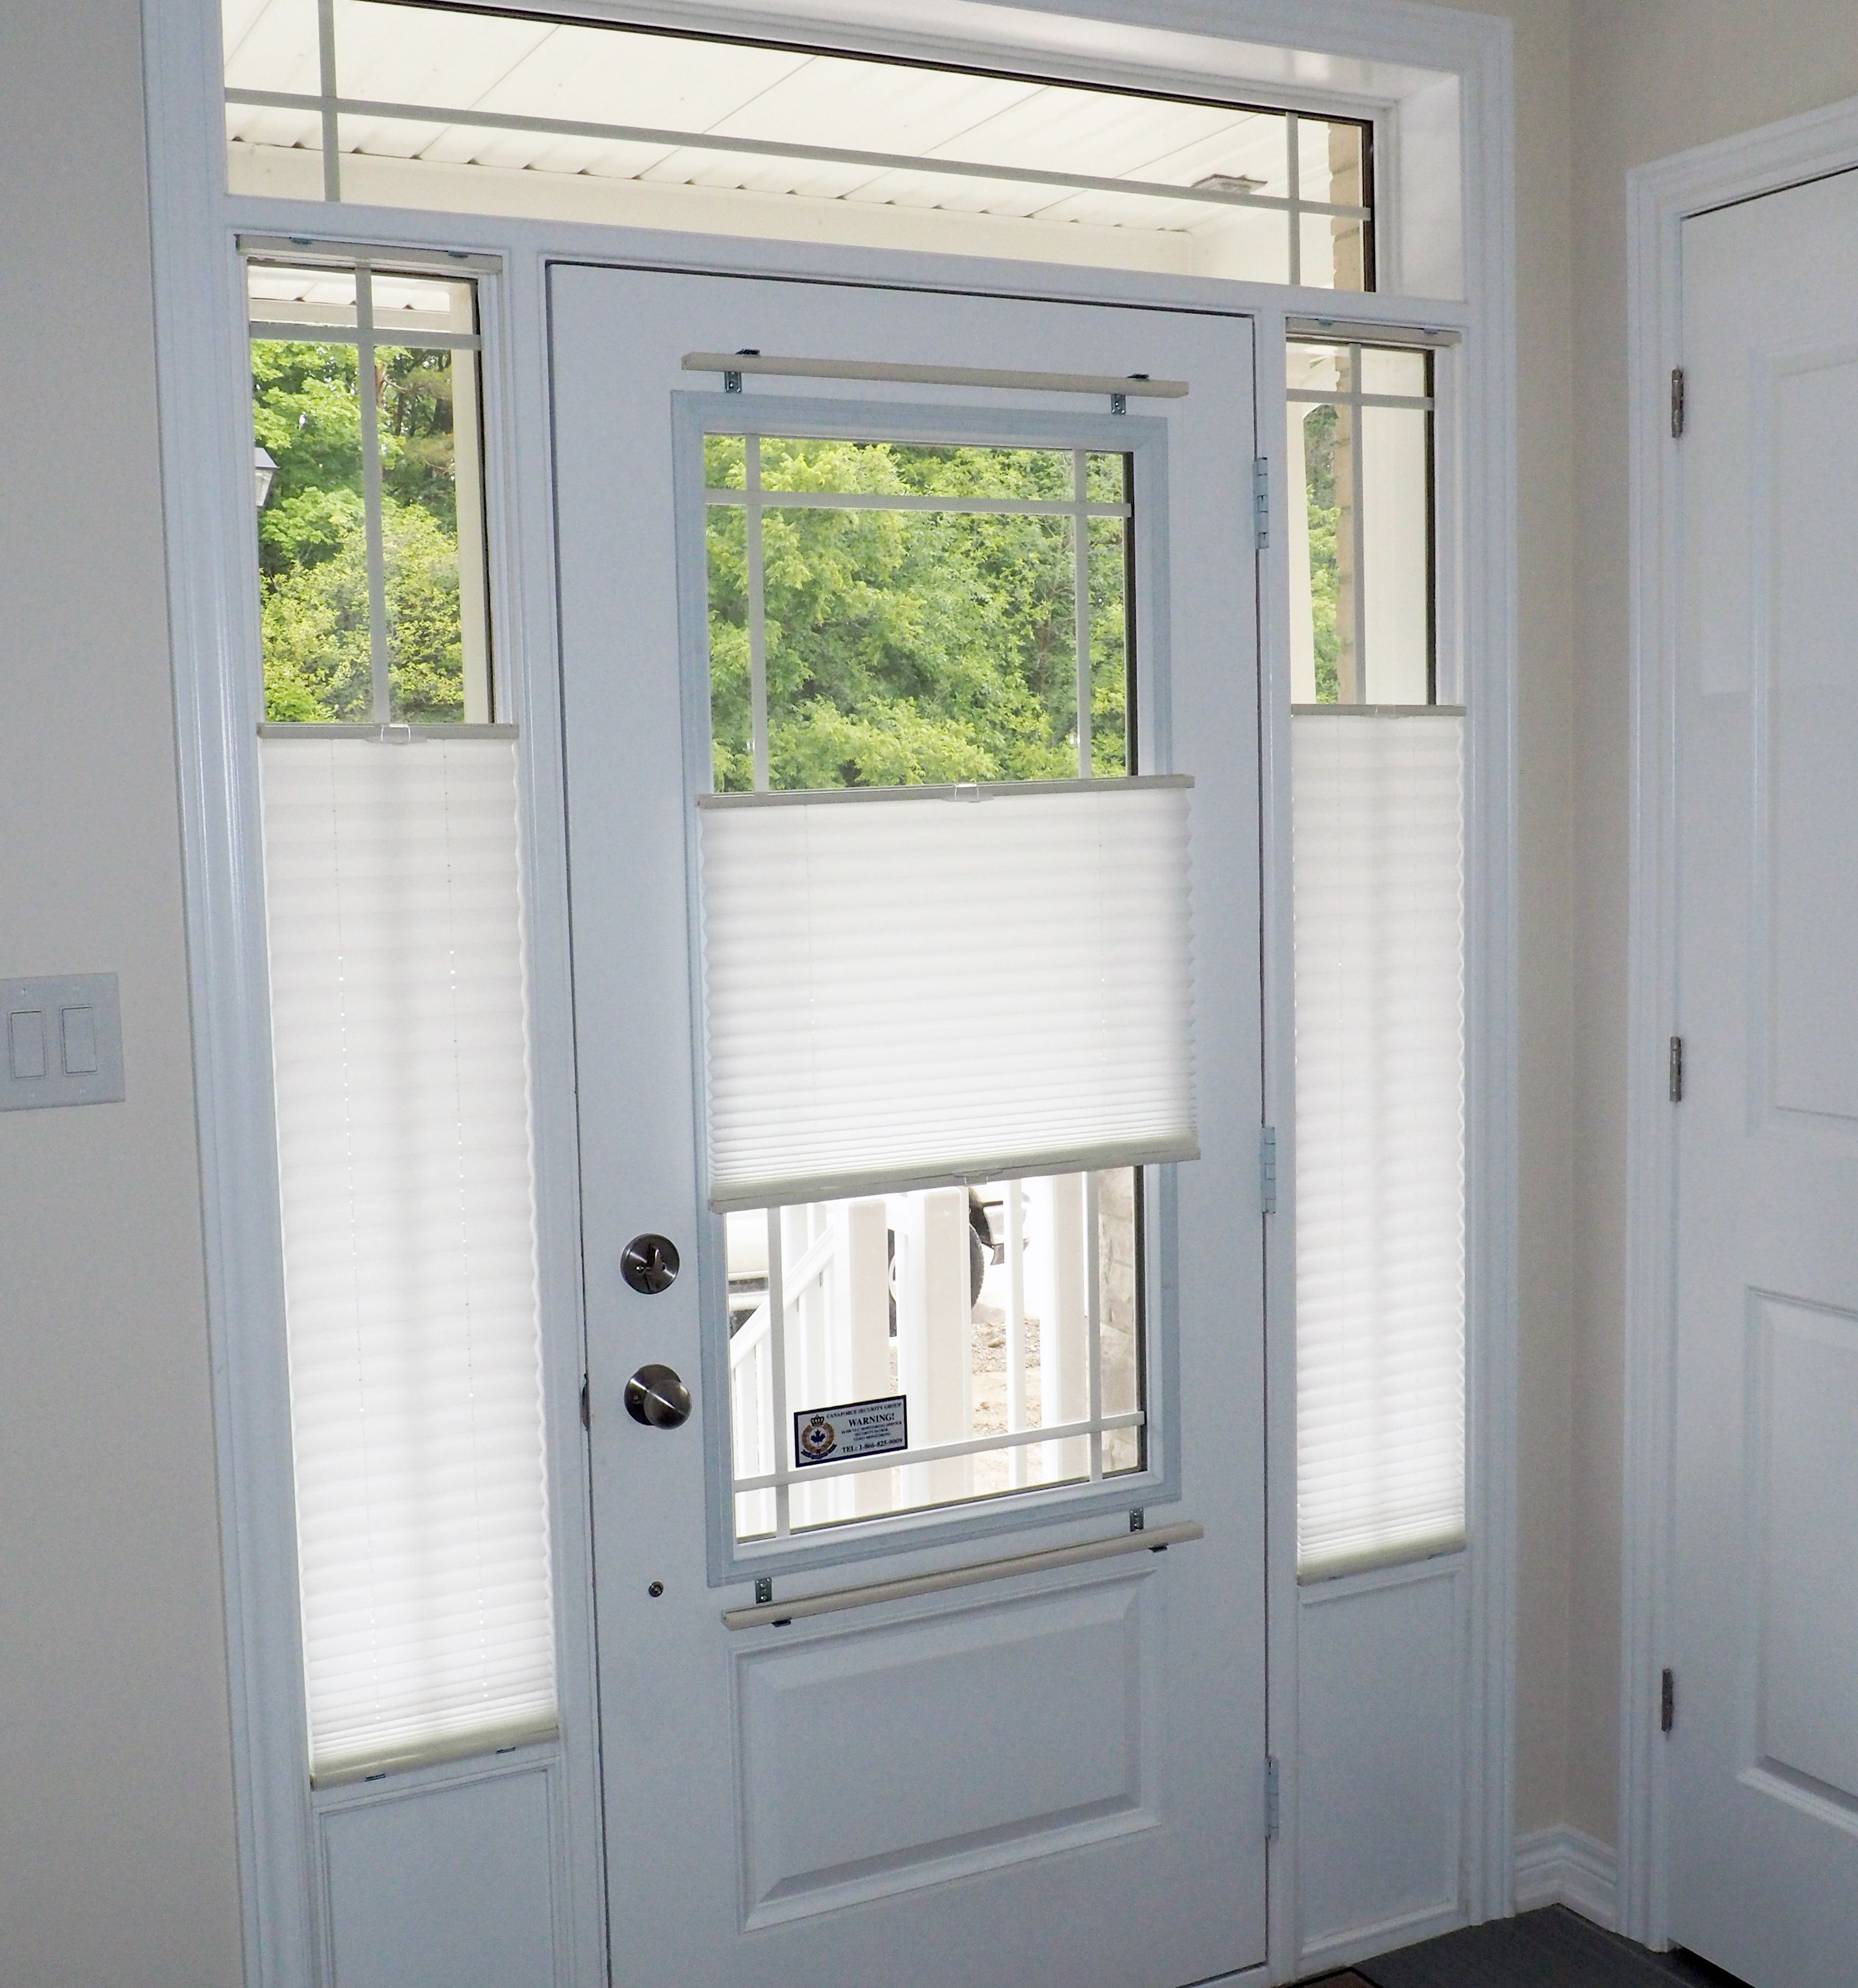 Pleated Shades Are An Economical Yet Highly Functional Window Covering Solution For Door Glass